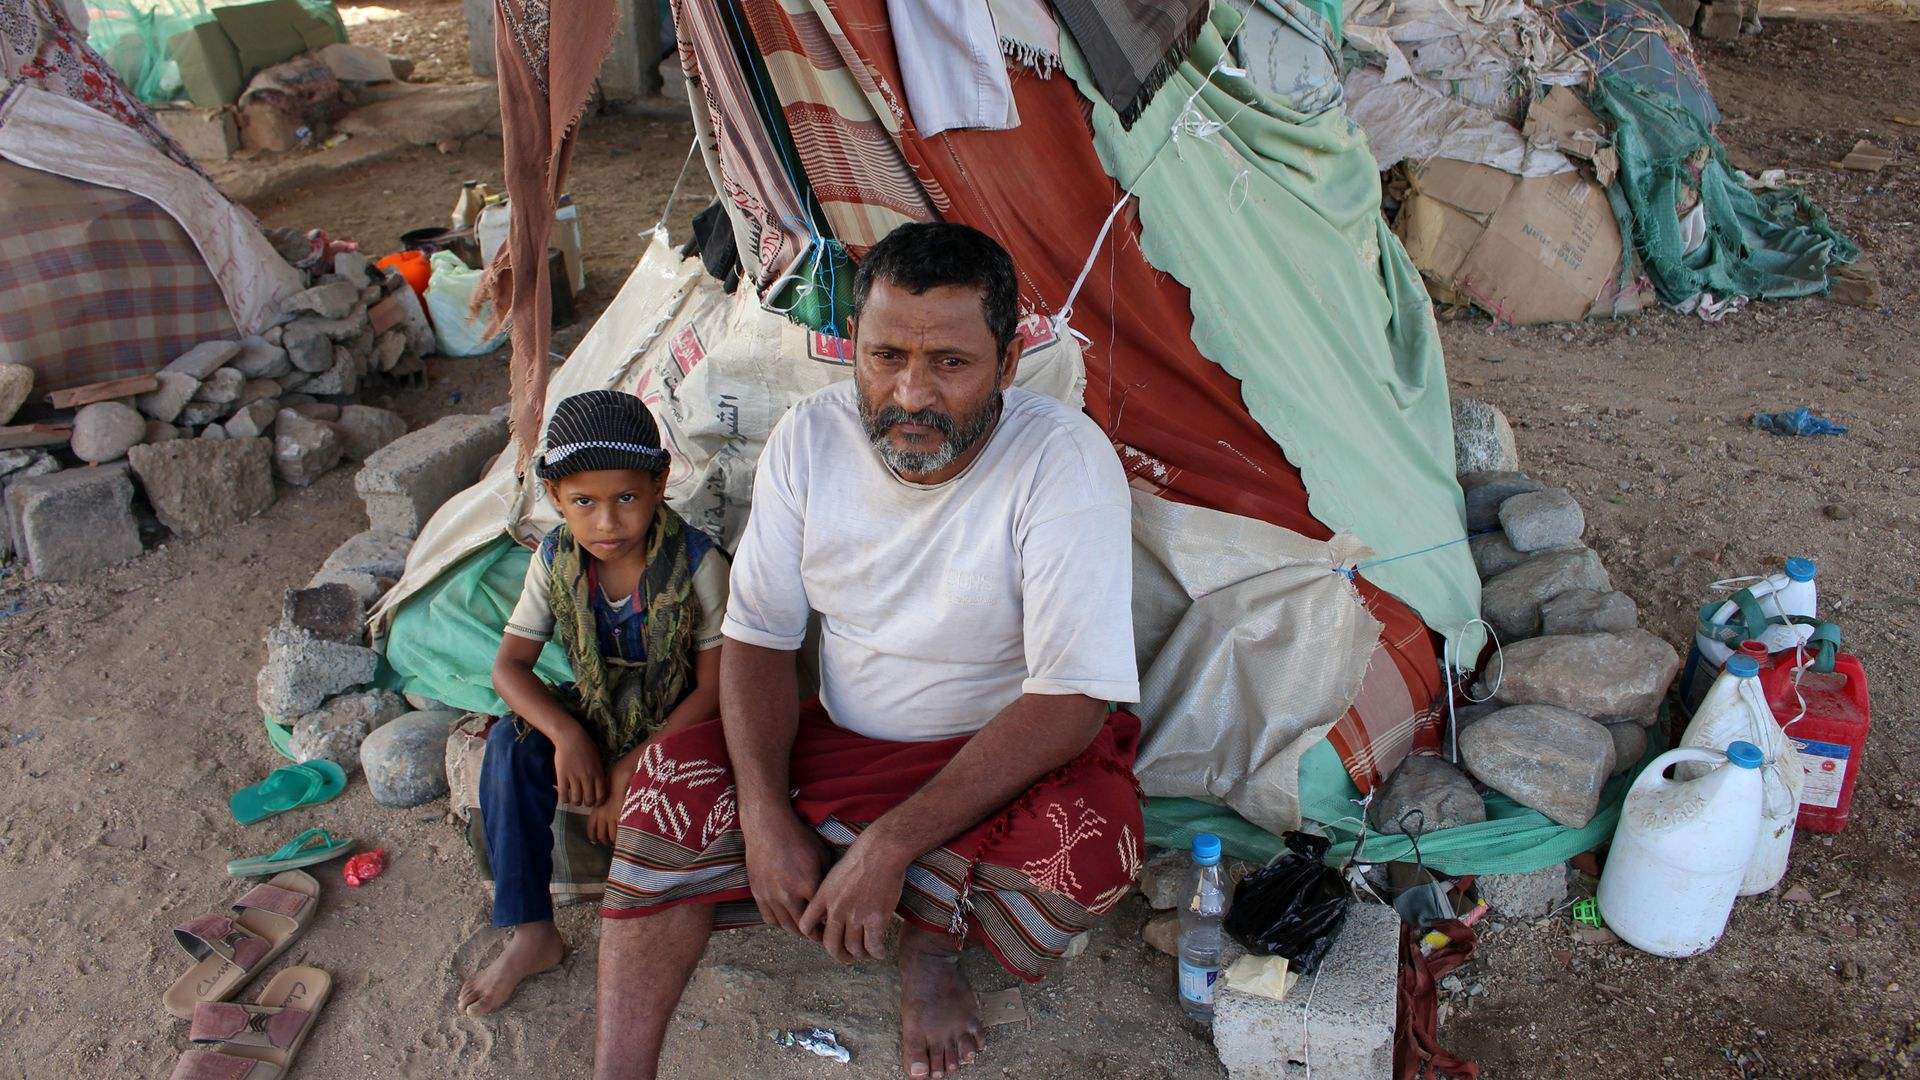 Displaced Yemenis sit under a makeshift shelter at a camp for internally displaced persons.